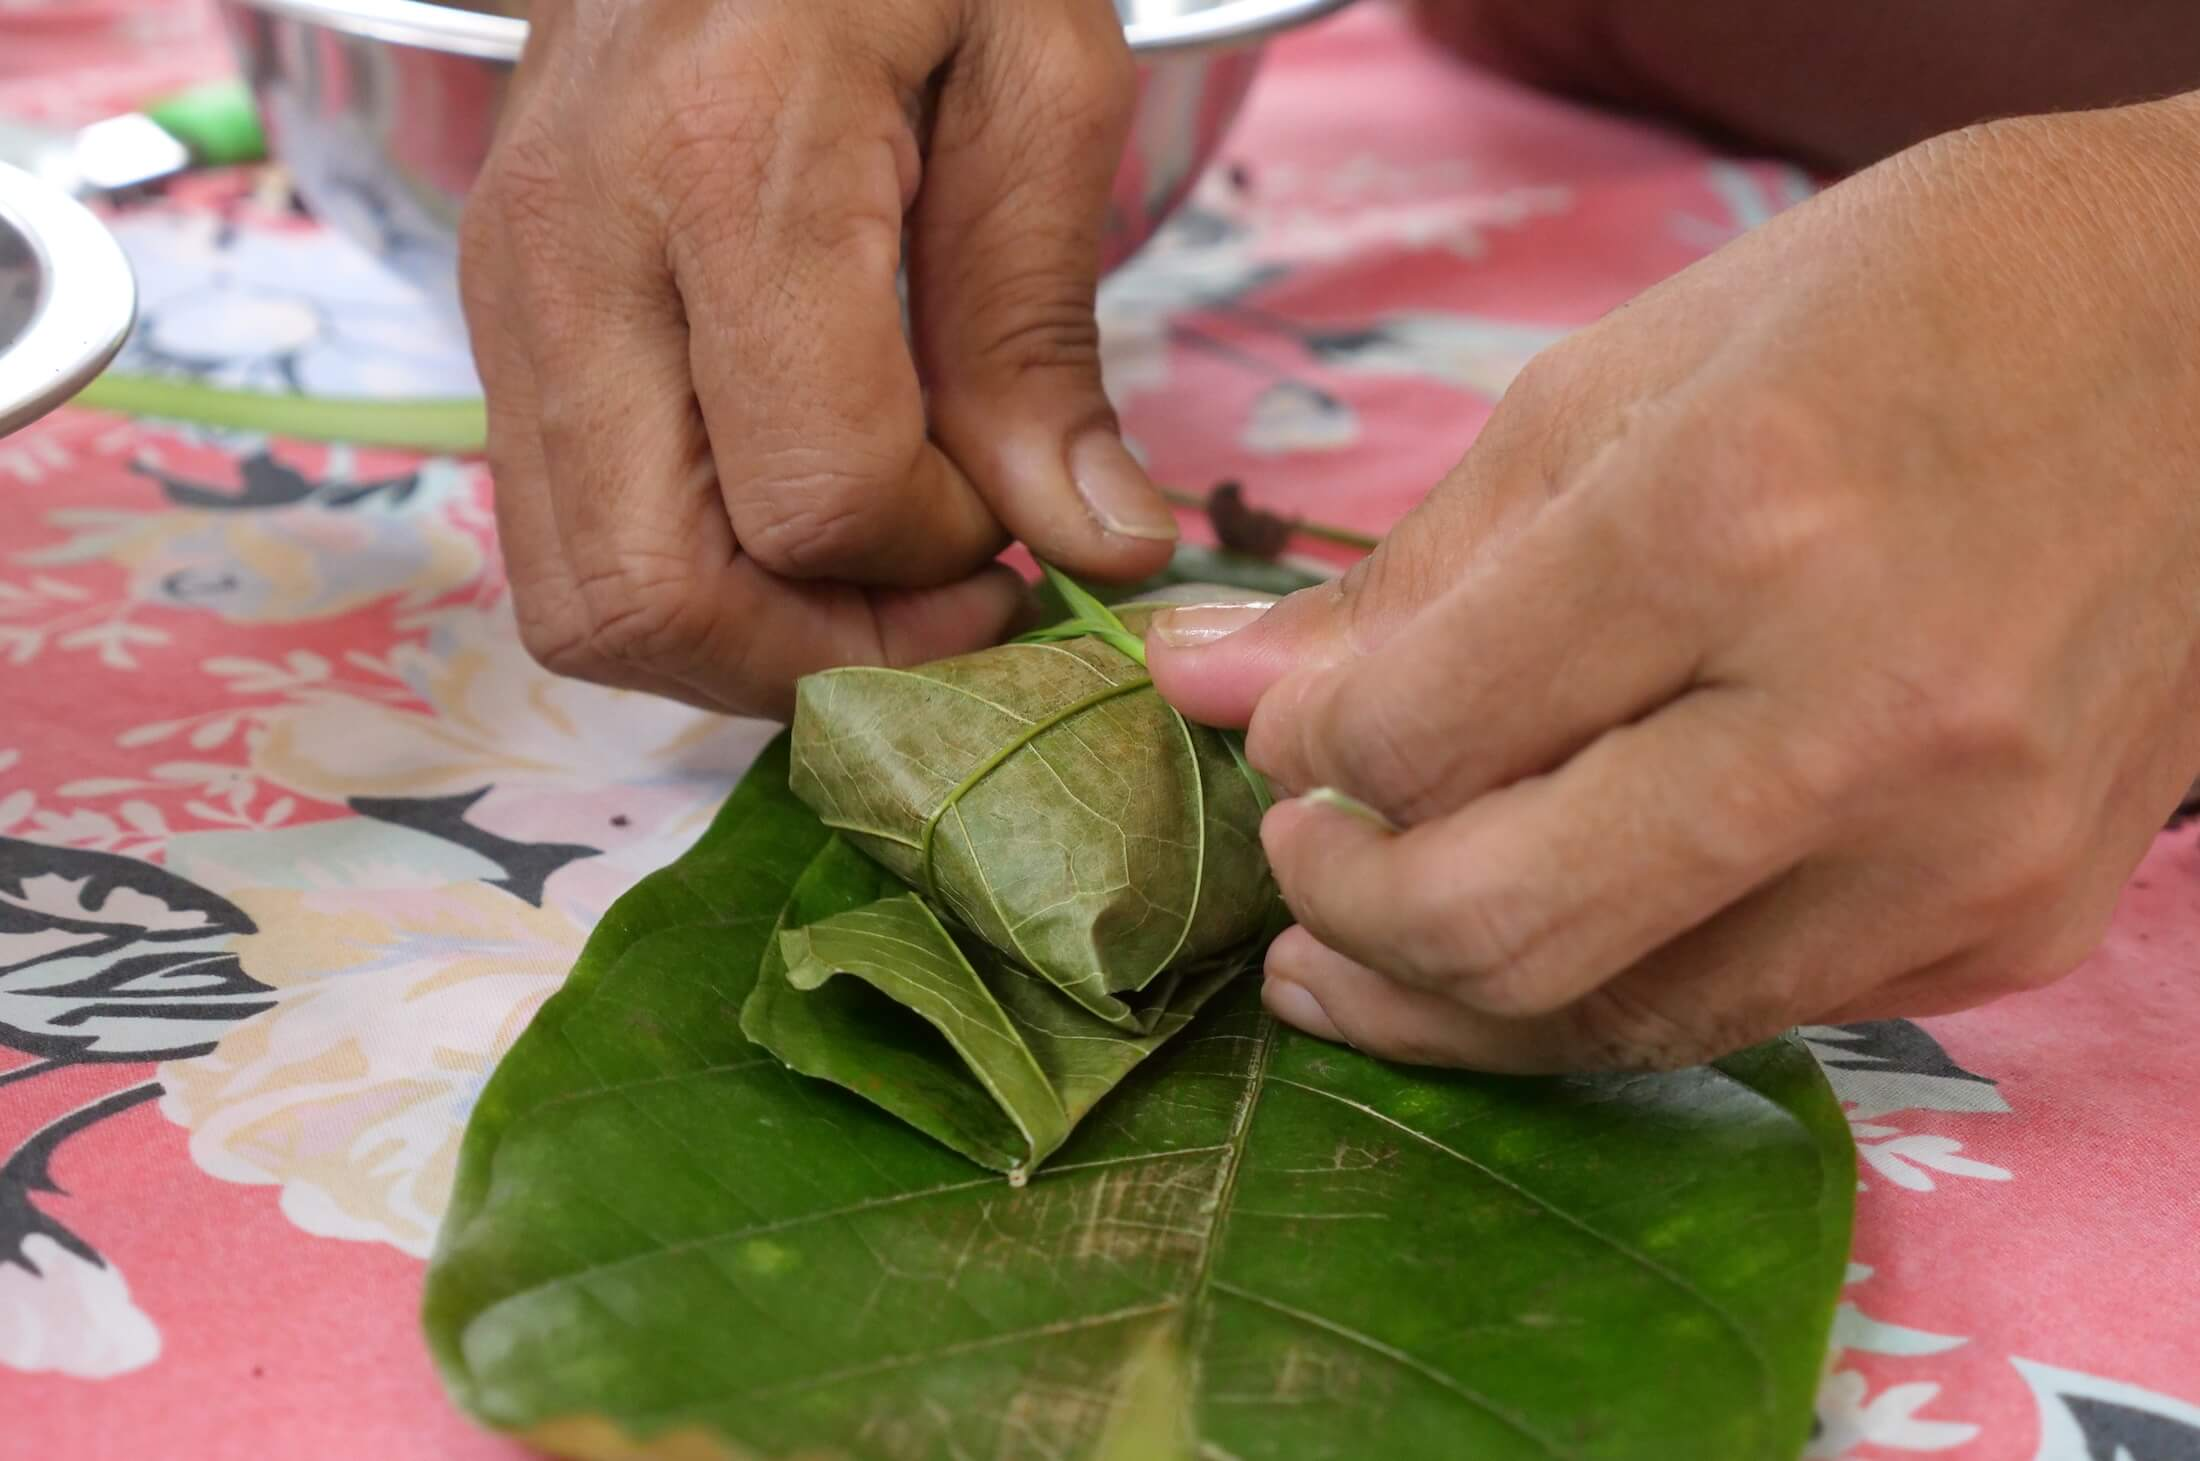 Using cacao leaves to wrap the fresh cacoa, it takes about a week for the entire process to be ready for consumption